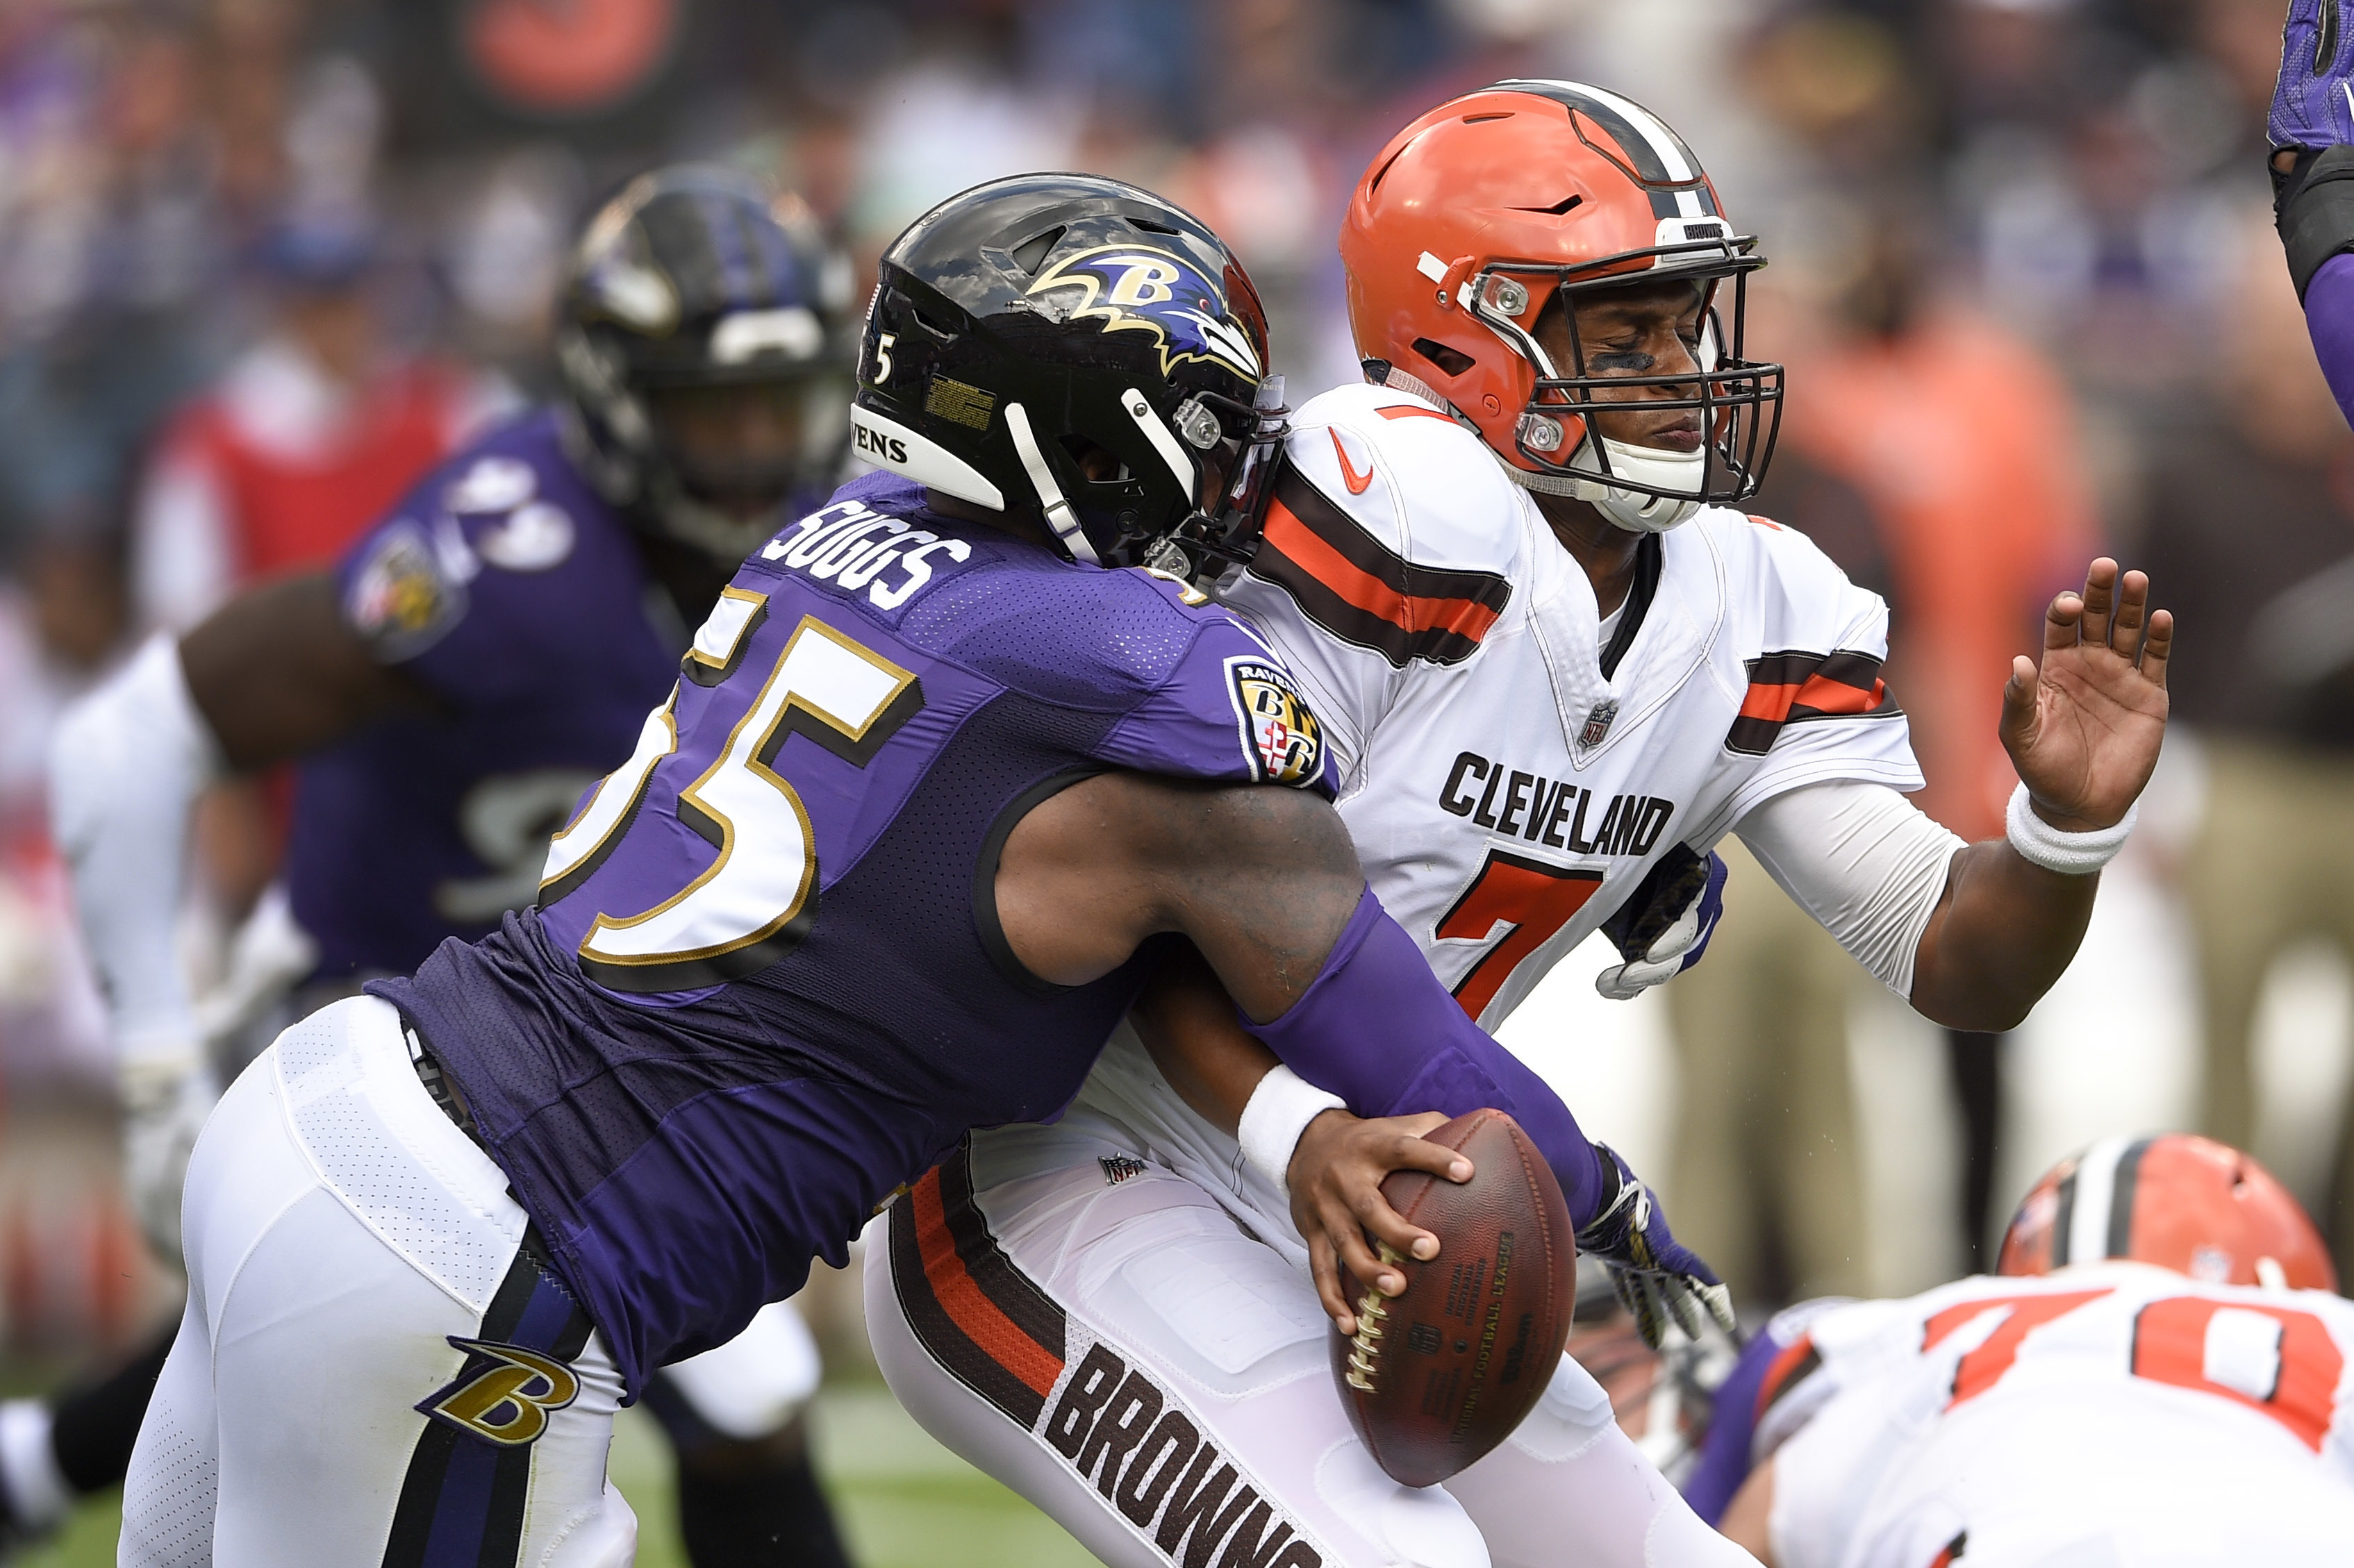 Ravens force 5 turnovers as Browns lose 24 10 The Blade